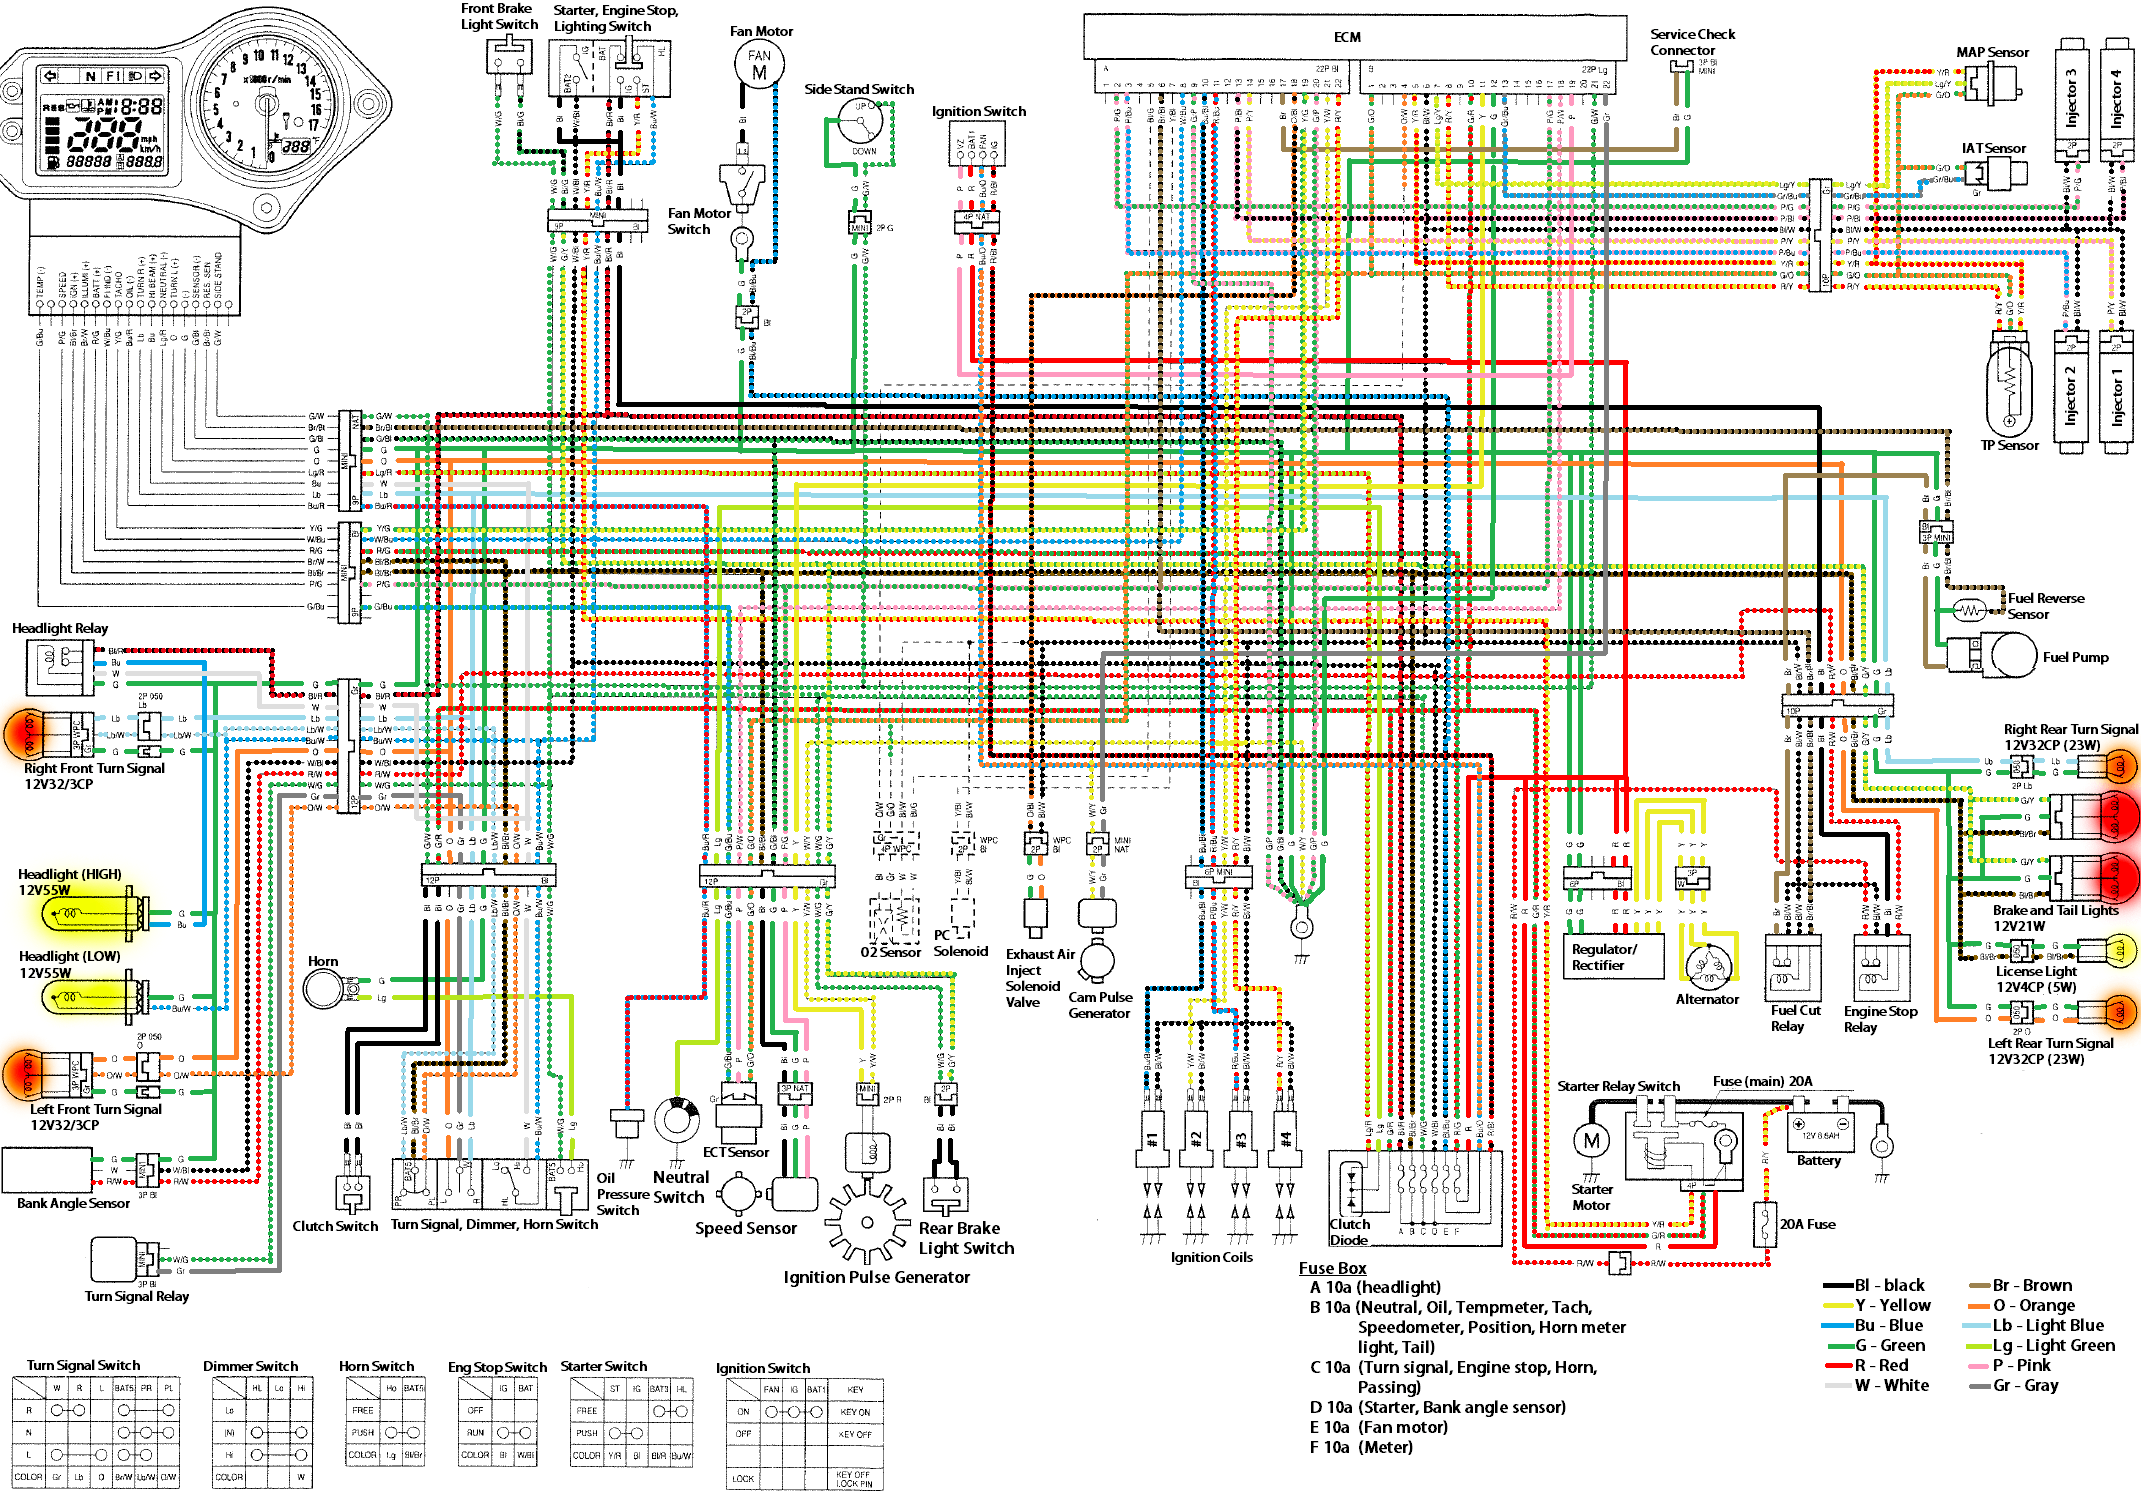 Bmw R1150gs Wiring Diagram Trusted Diagrams 2000 Delighted Vw Polo Usb Input 1996 750il Stereo